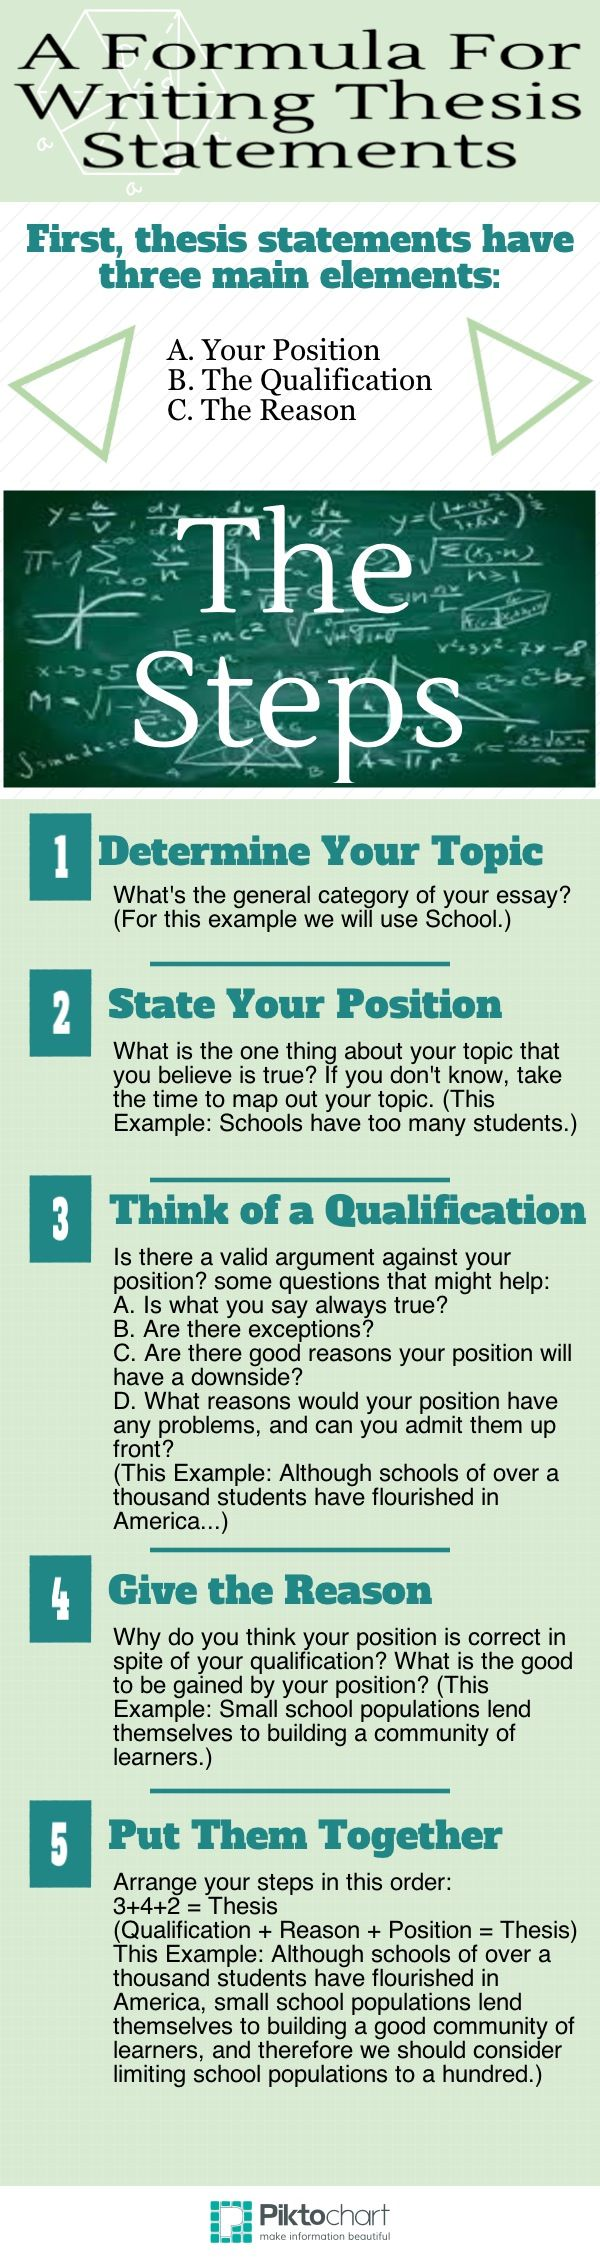 How To Write A Good Thesis Statement For An Essay Thesis Statements  Piktochart Infographic How To Write A Proposal For An Essay also Argument Essay Sample Papers Best  Thesis Writing Ideas On Pinterest  Essay Words Creative  How To Start A Synthesis Essay